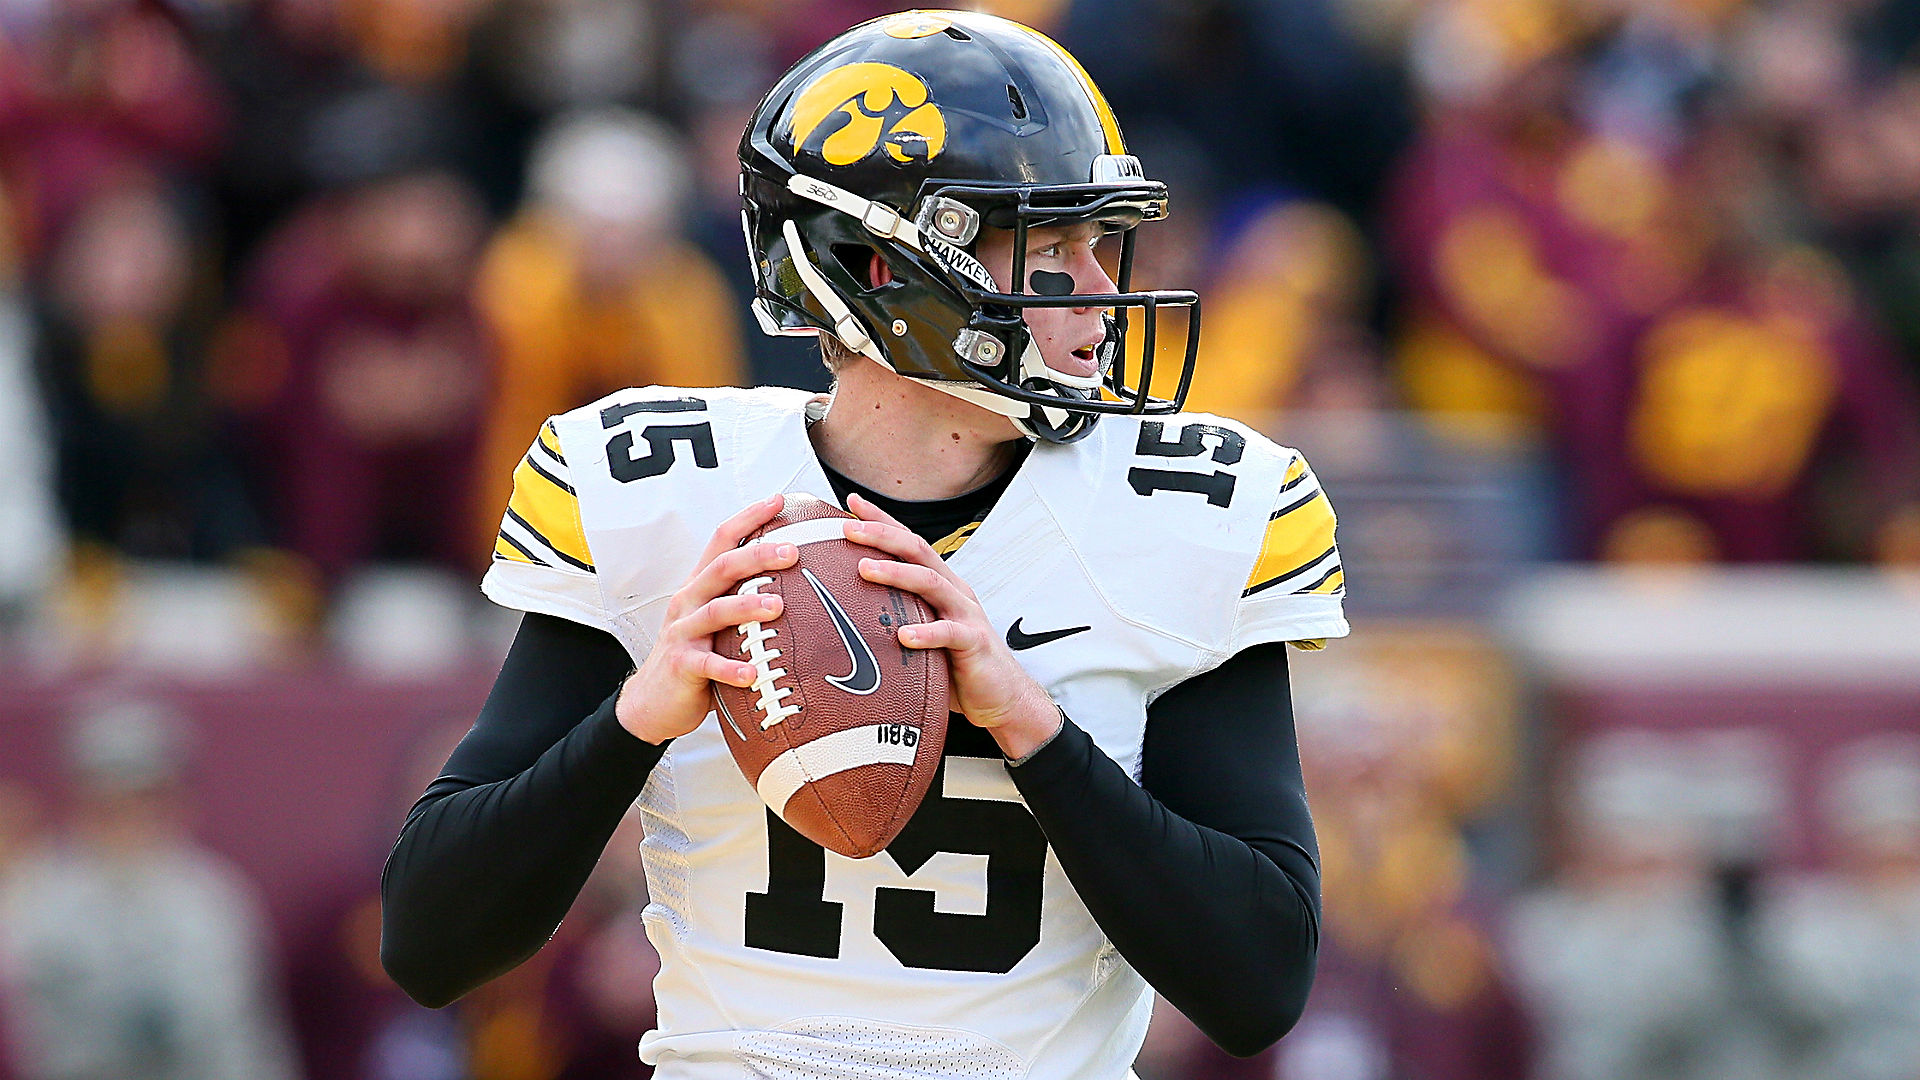 Wisconsin vs. Iowa betting preview and pick – Key battle in Big Ten West